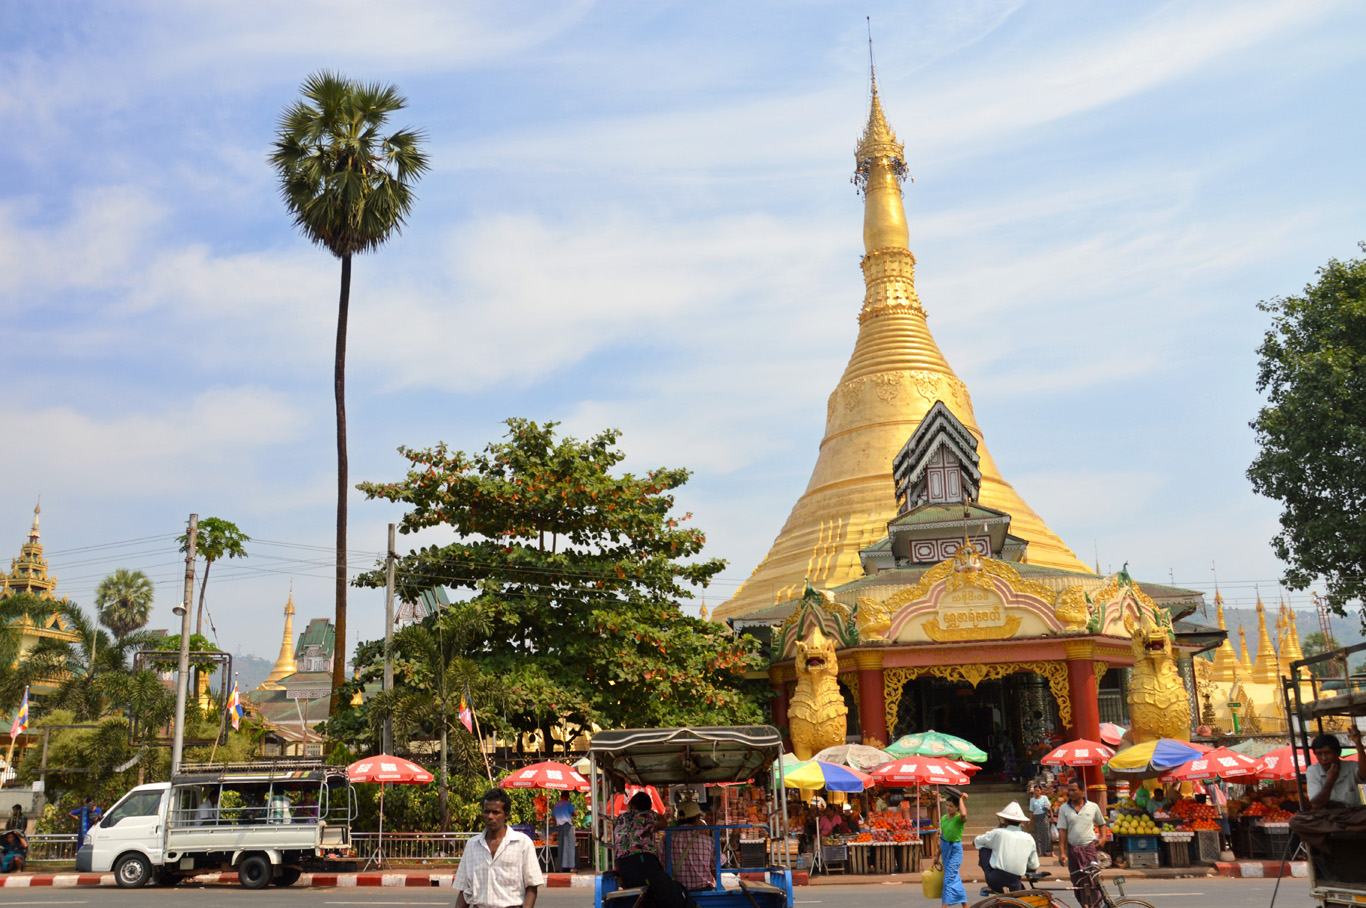 The town of Thaton - where we ended up by mistake